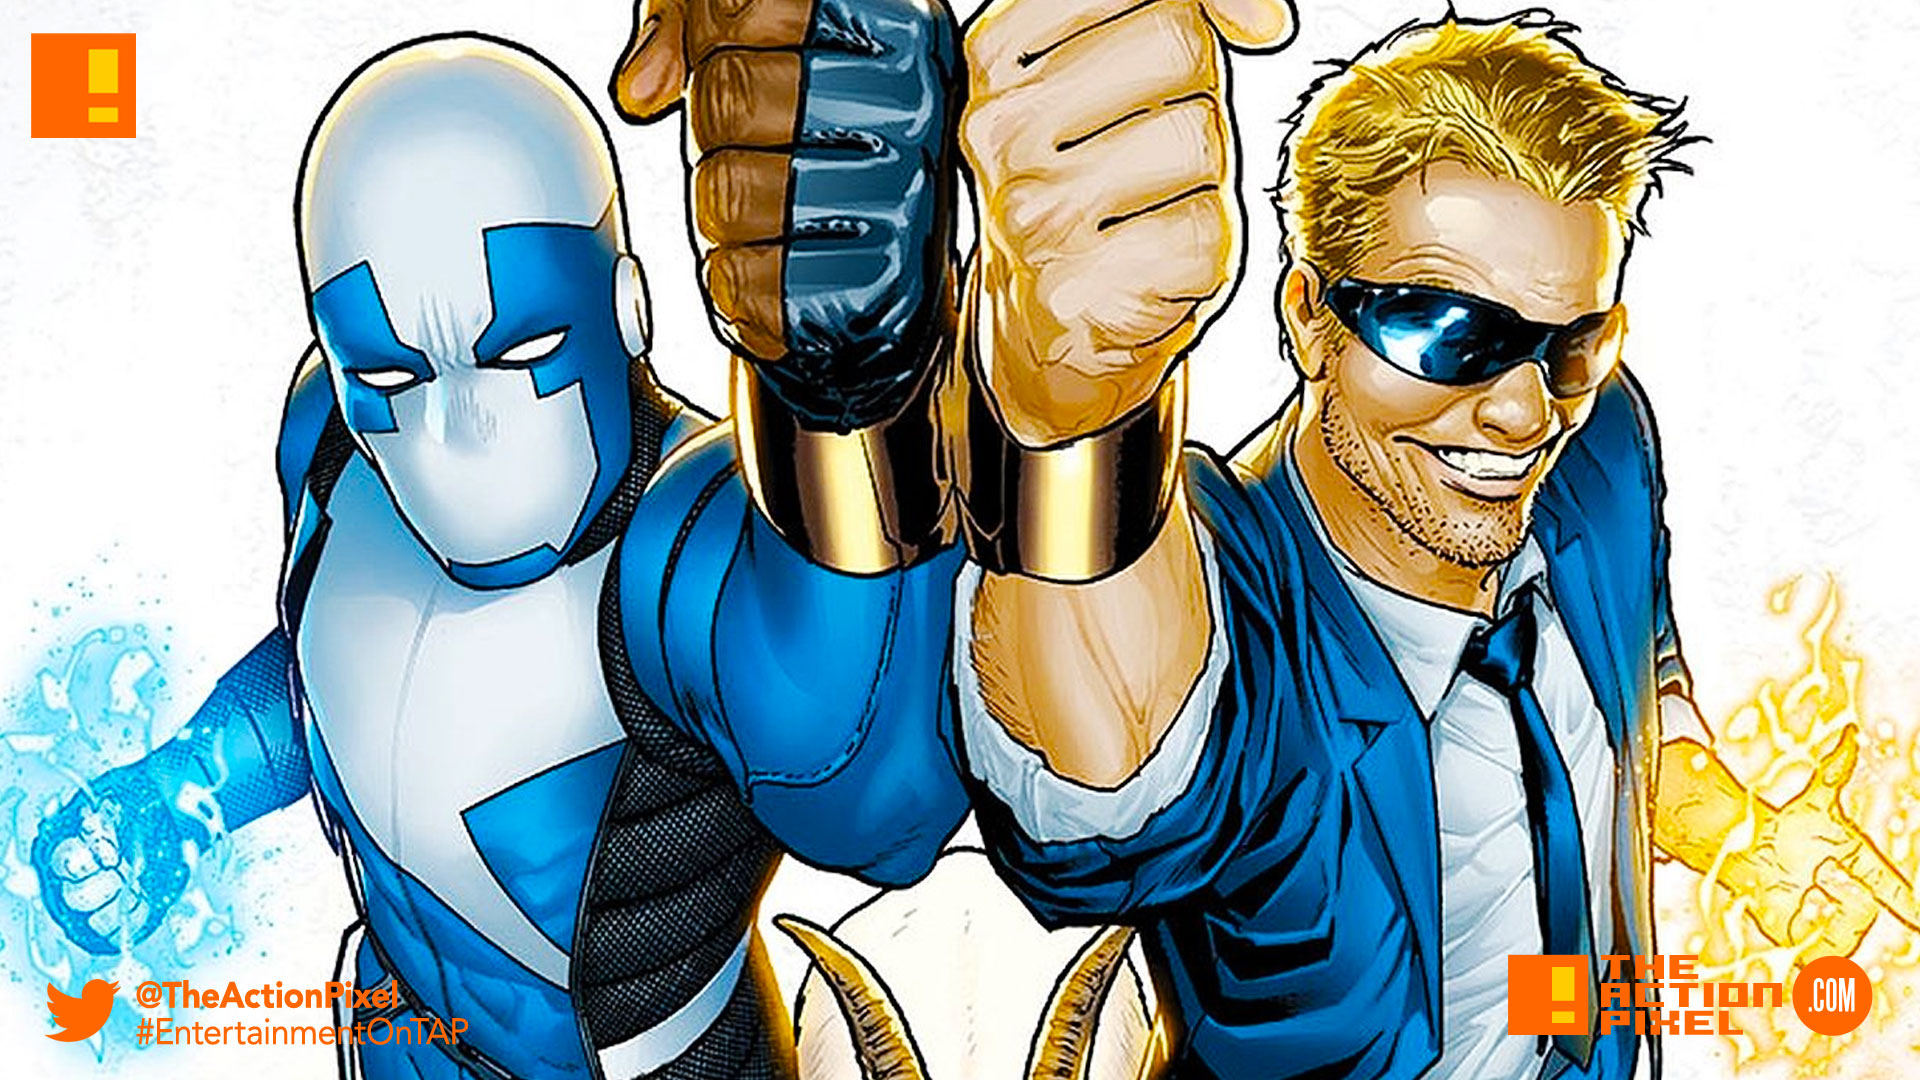 quantum and woody, valiant comics, the action pixel, entertainment on tap, the action pixel